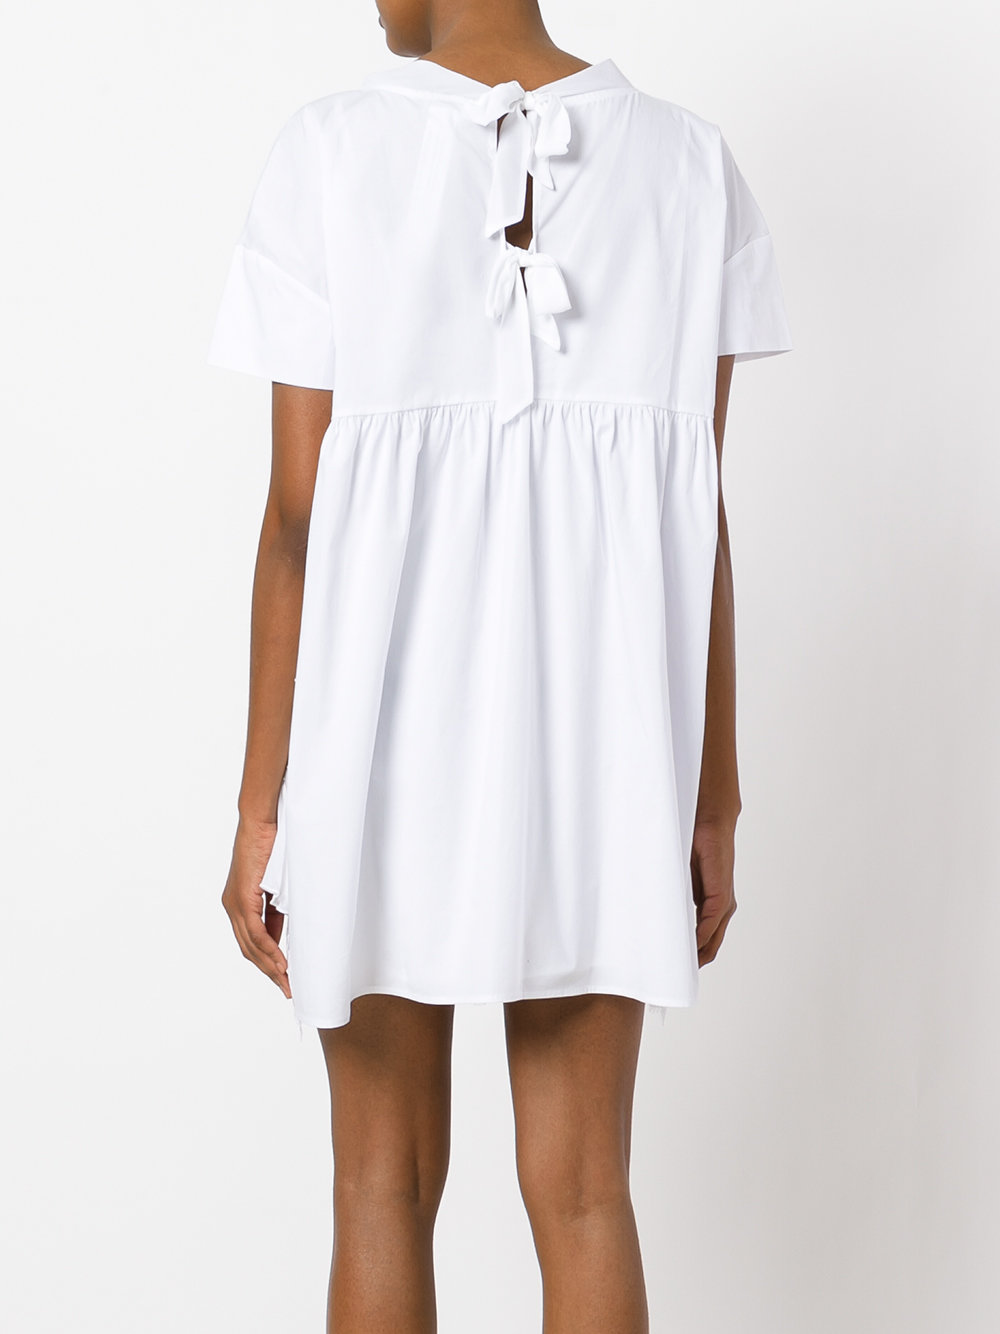 Twin set in the outlet ... twin-set pleated trim lace dress 001 bianco ottico women clothing day  dresses,twin ... DLBHIKJ